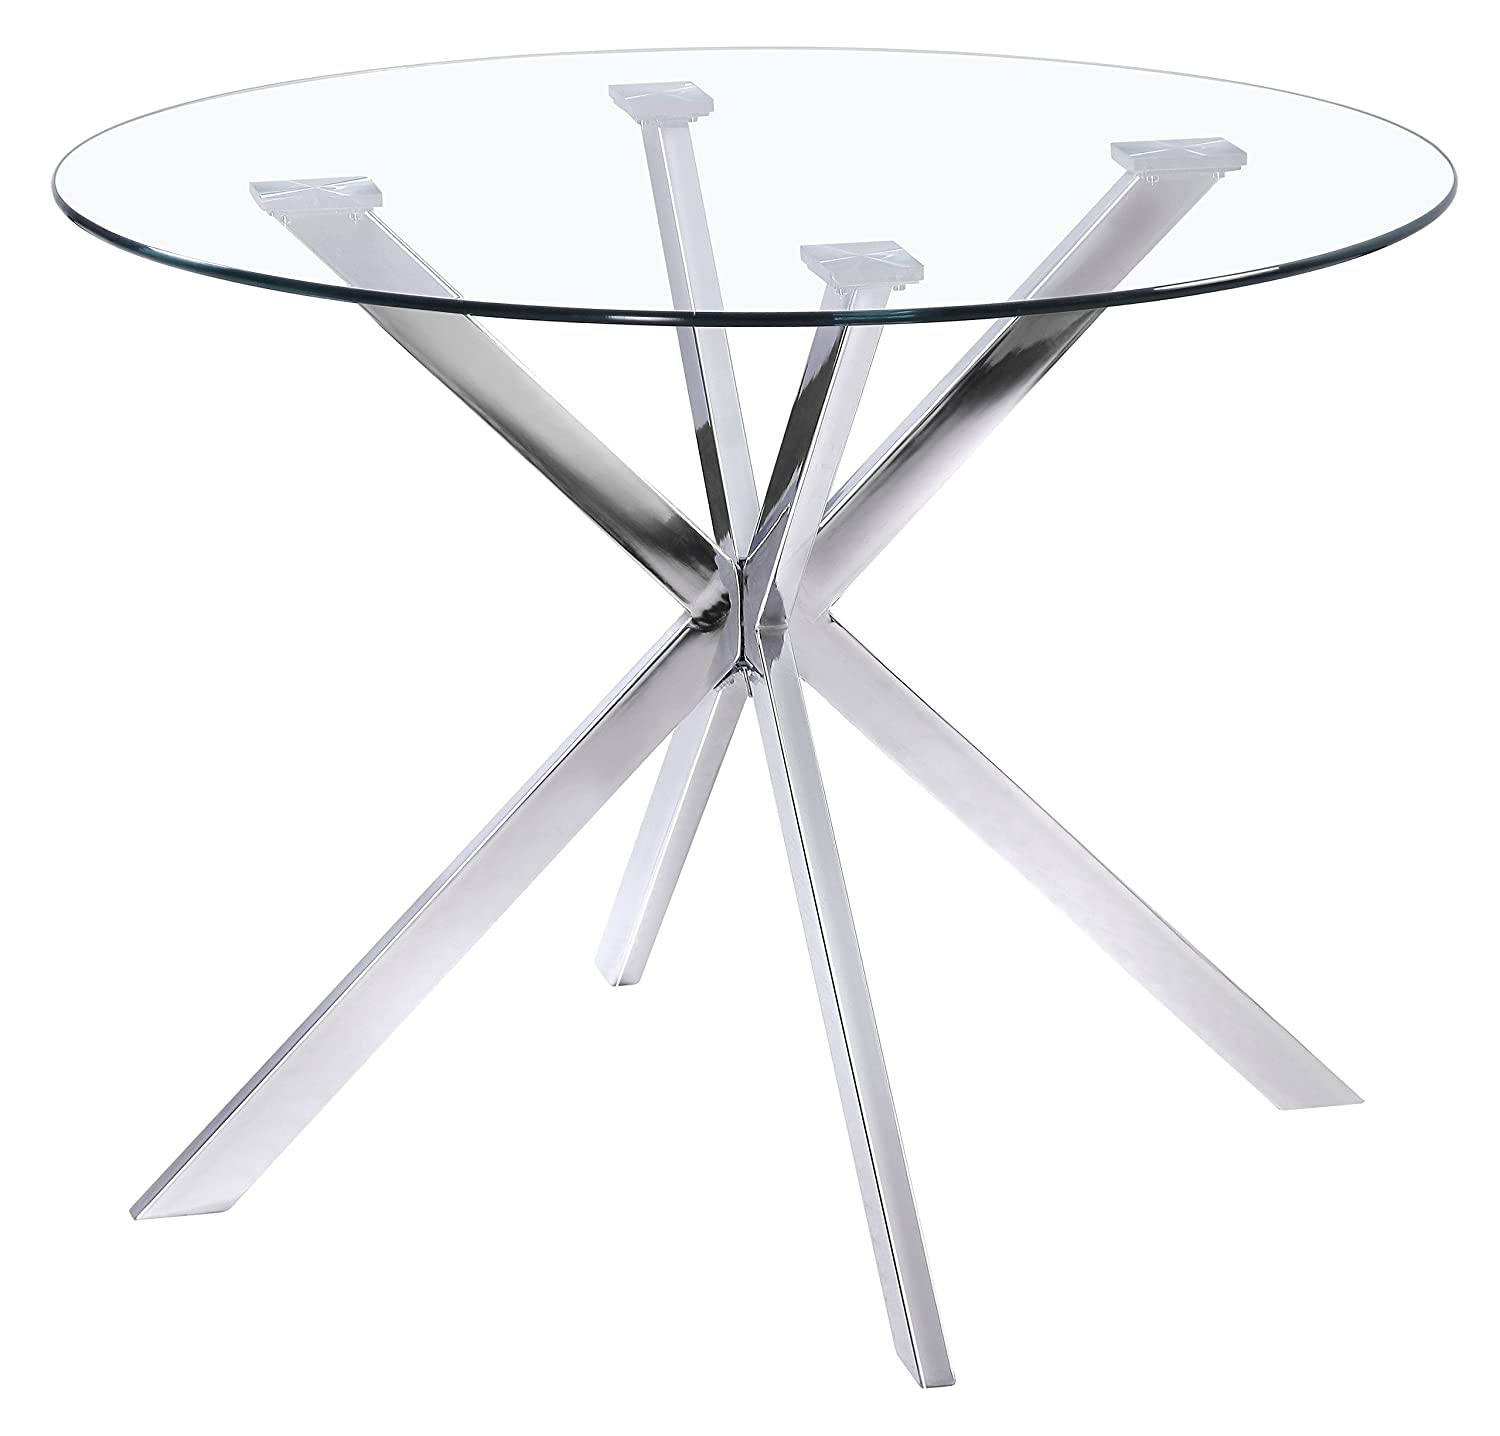 "Uptown Club Franz Collection State-of-the-art Designed Round Glass Top Dining Table, 41.3"" L x 41.3"" W x 29.5"" H"